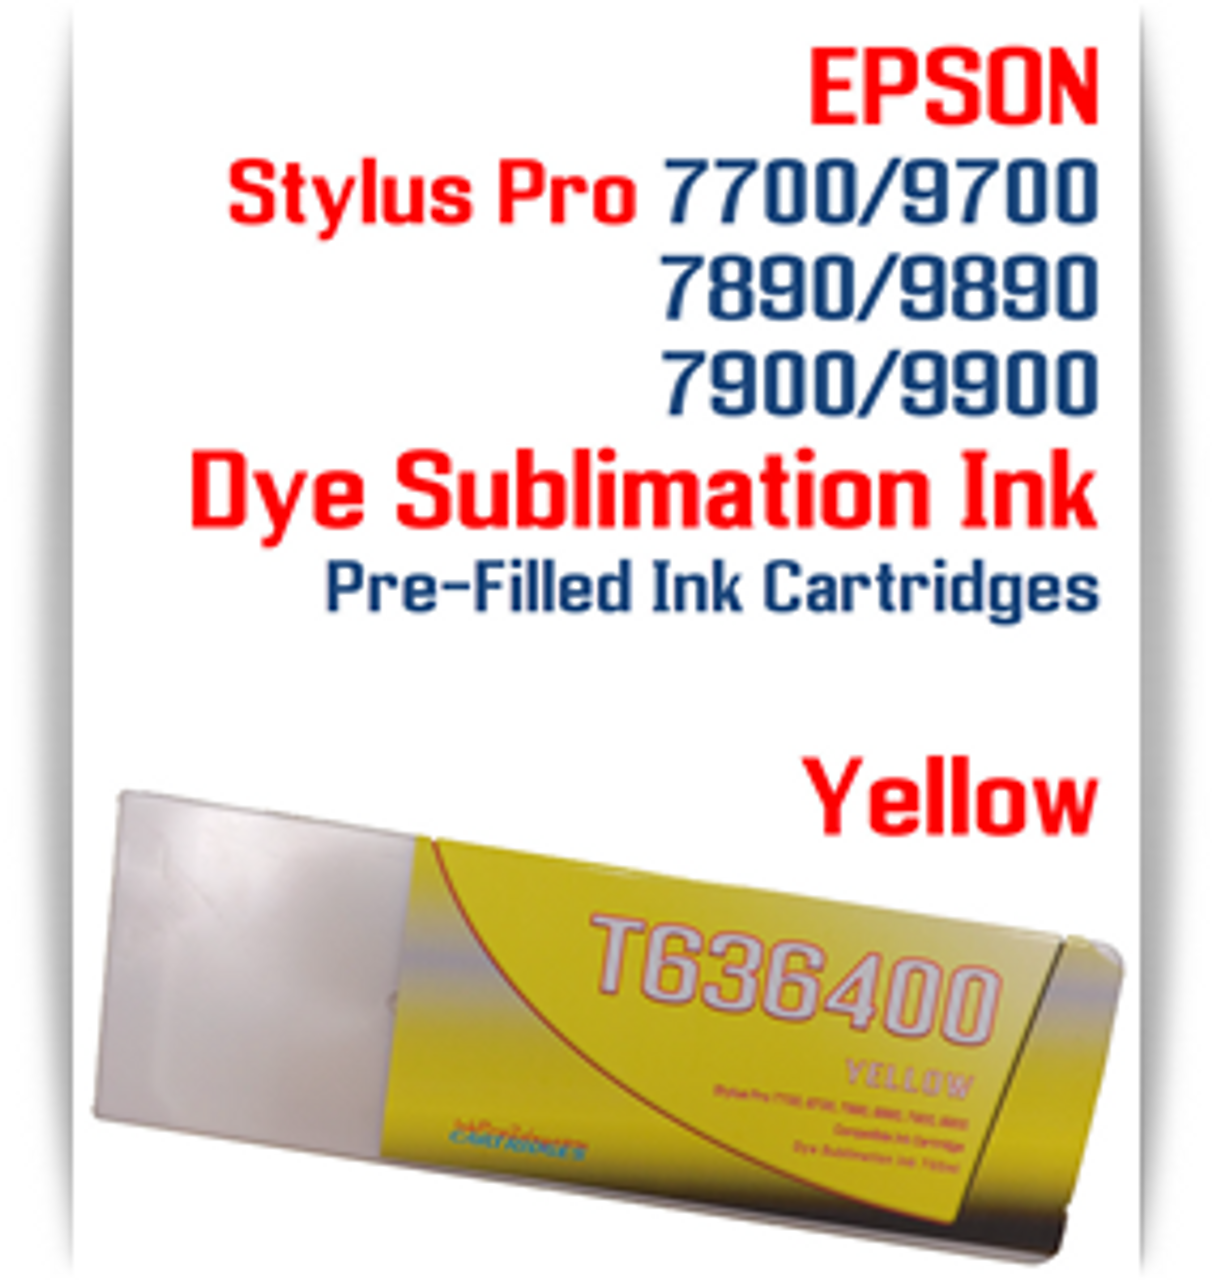 Yellow Epson Stylus Pro 7700/9700, 7890/9890, 7900/9900 Pre-Filled Dye Sublimation Ink Cartridge